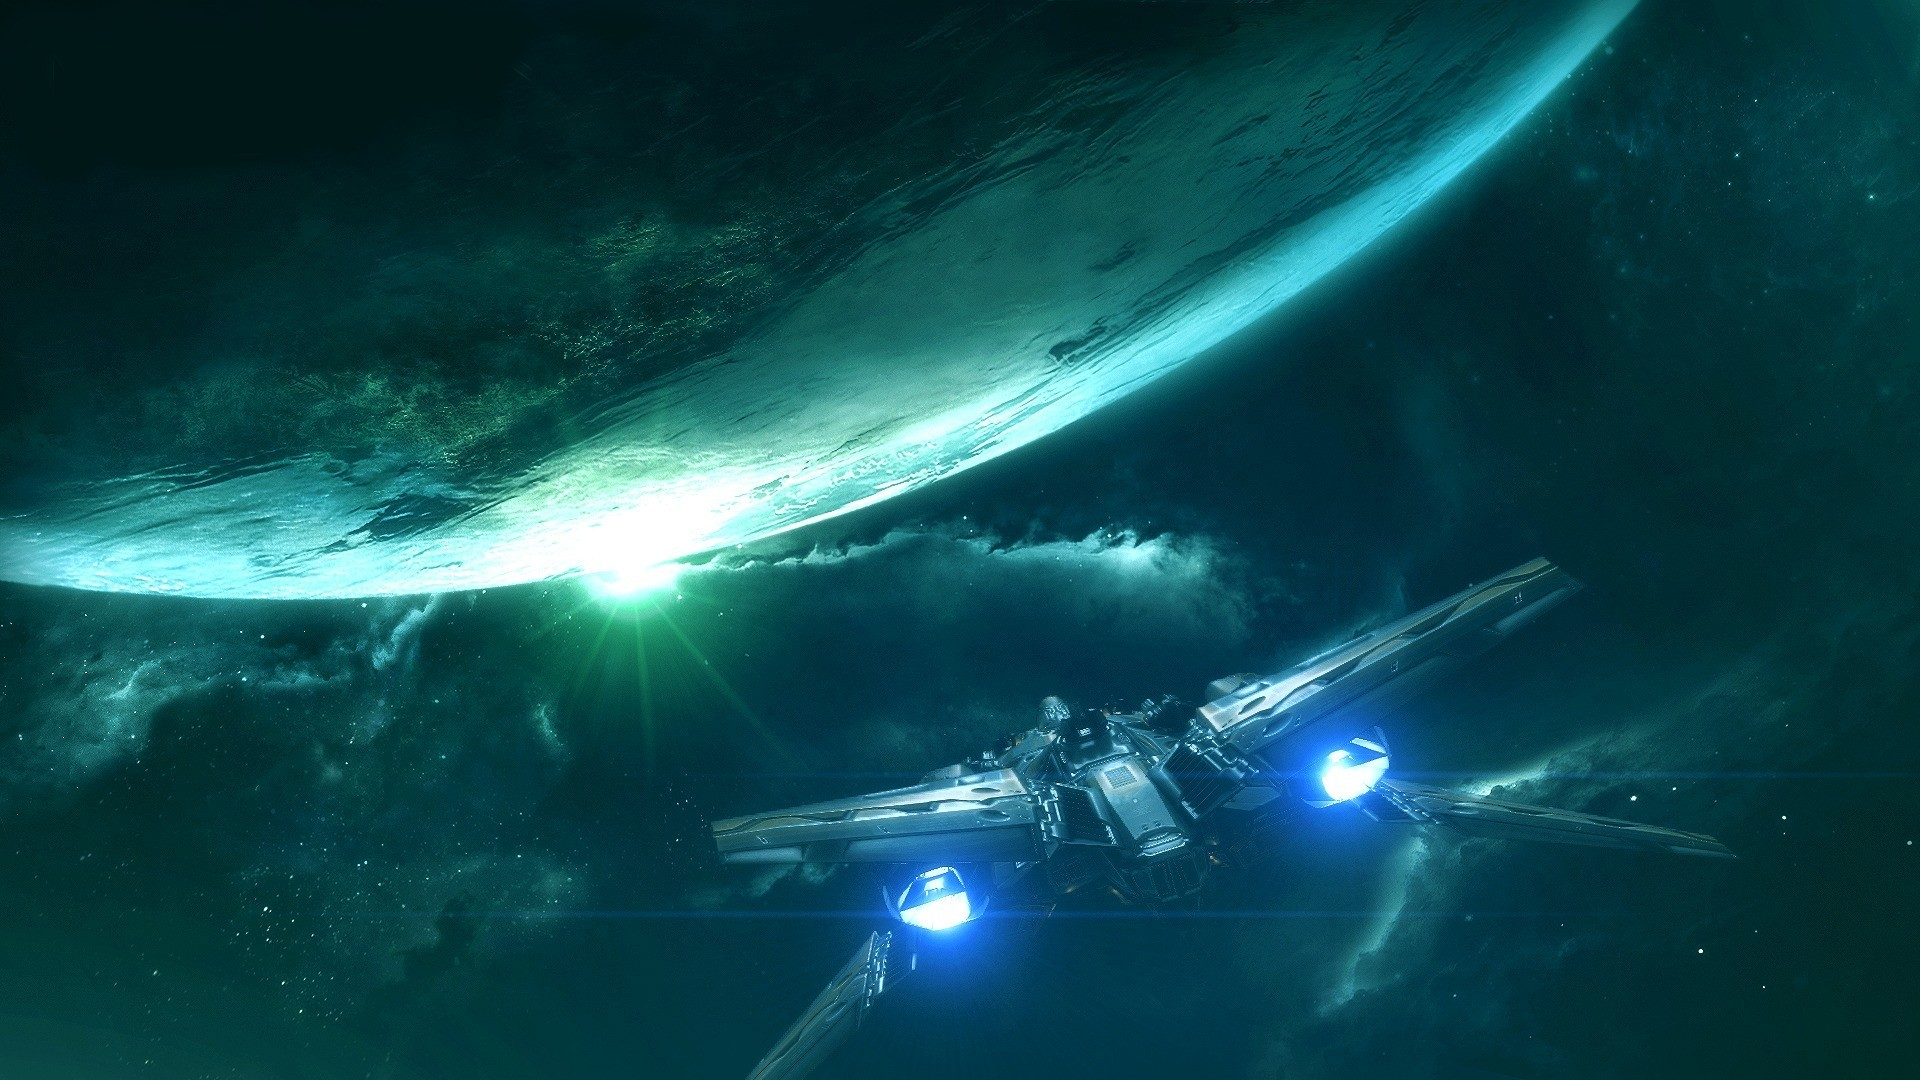 Res: 1920x1080, Download Original Wallpaper Category:space ...